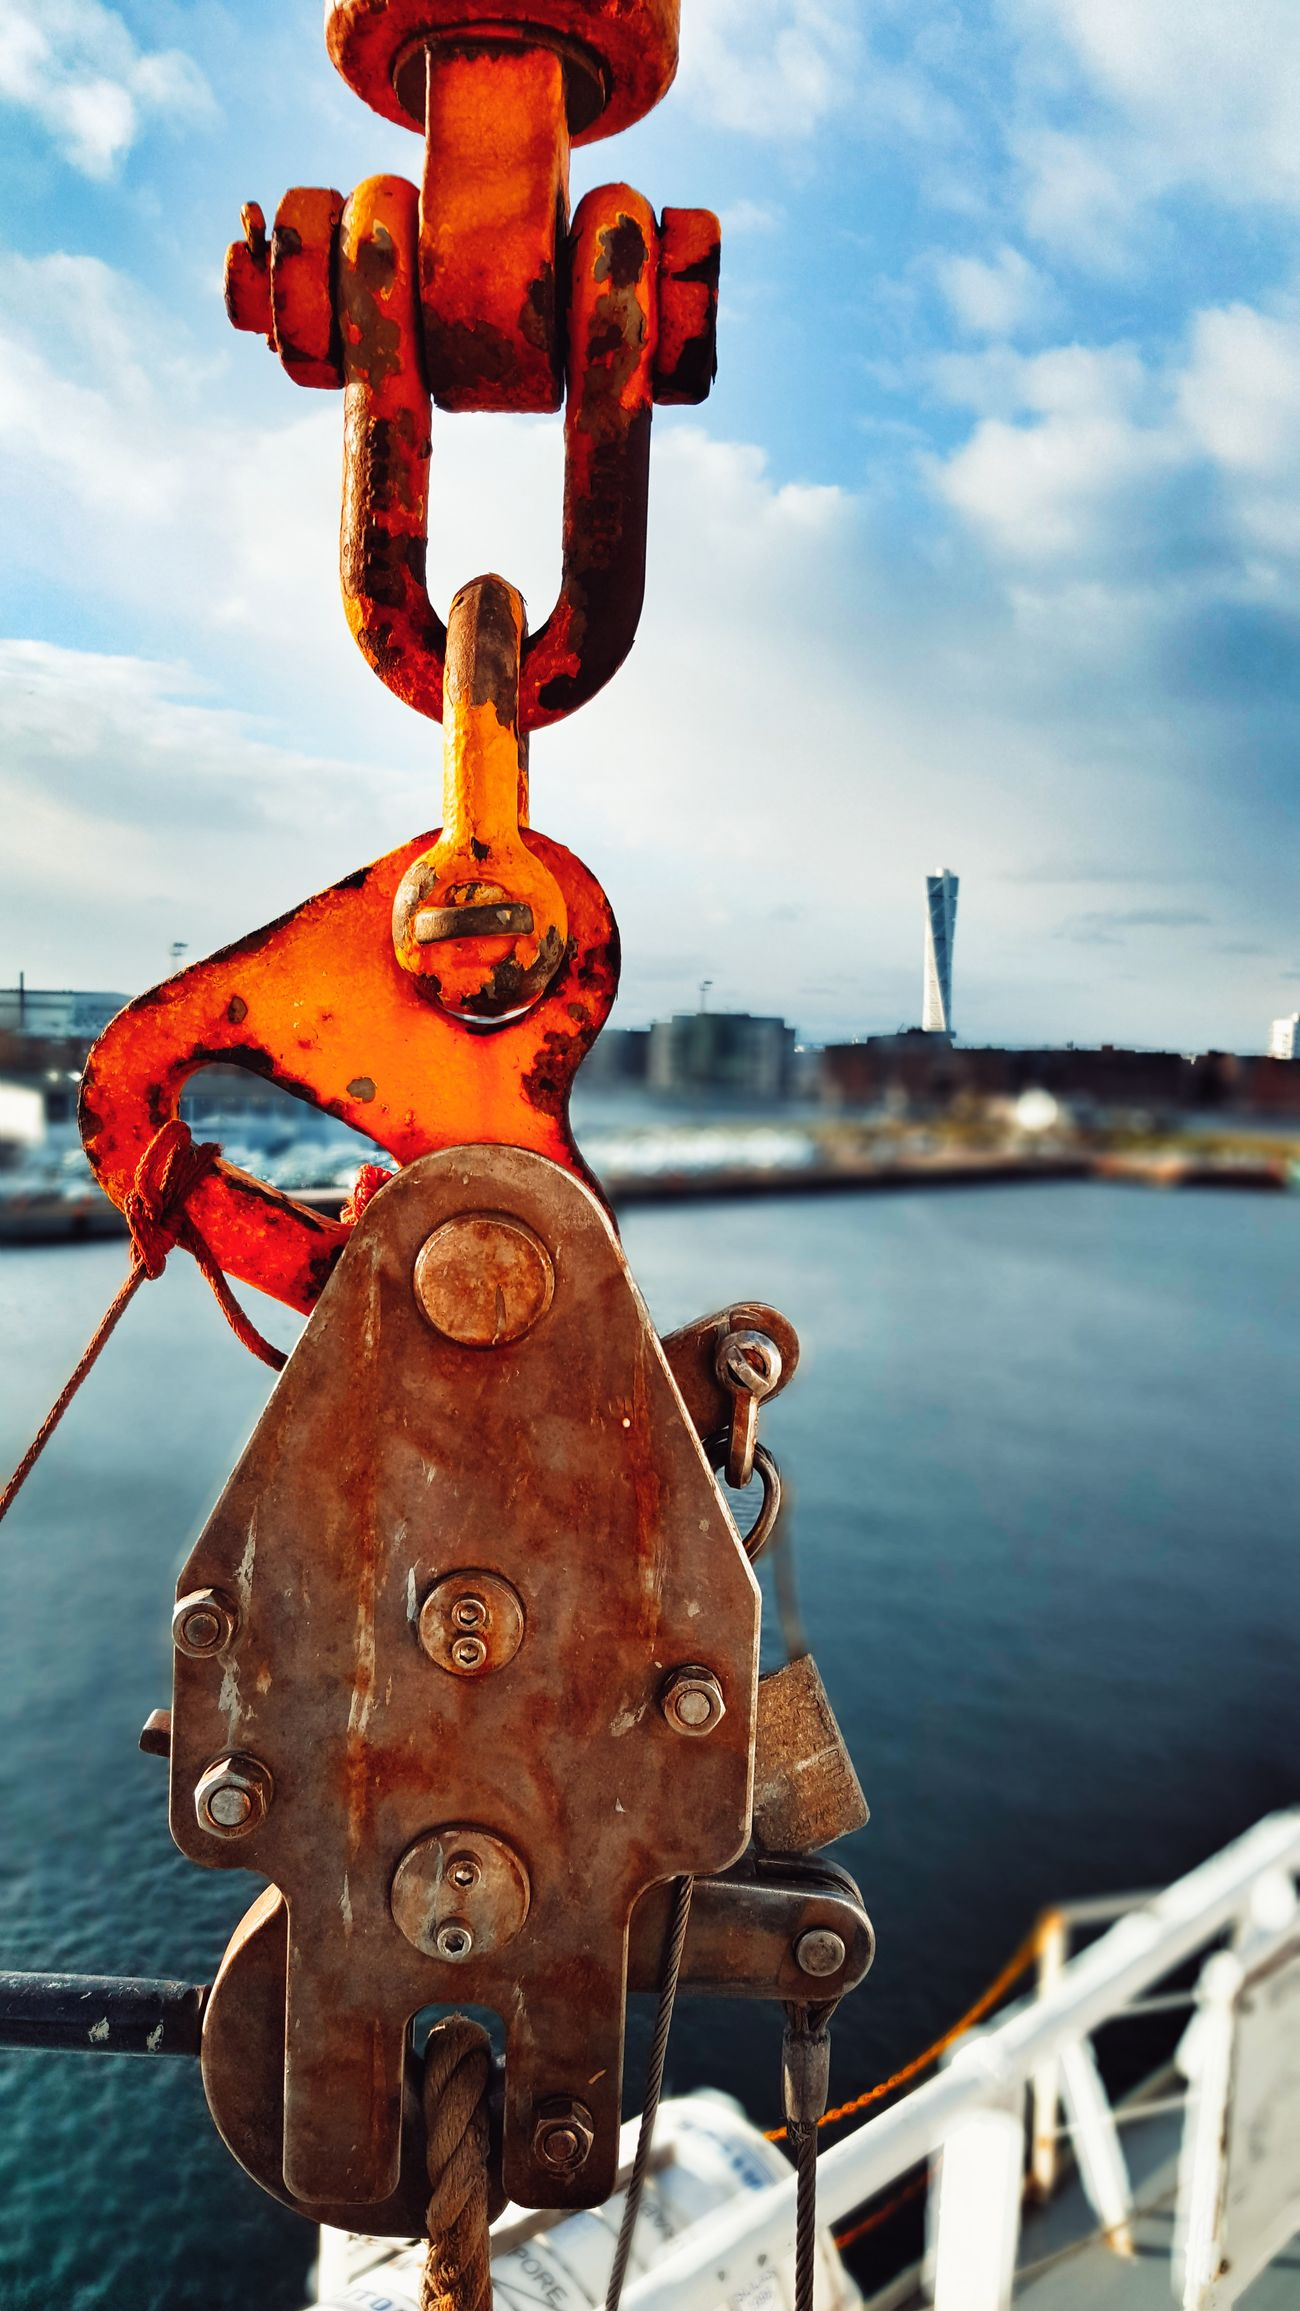 Rusty Shackles Twisted Tower Twisted Torso Malmö, Sweden Ship At Dock Shiplife Outdoors Architecture Built Structure Traveldiaries Taking Photos Eyeem Photography EyeEm Gallery Stayonboard Taking Pictures Enjoying The View